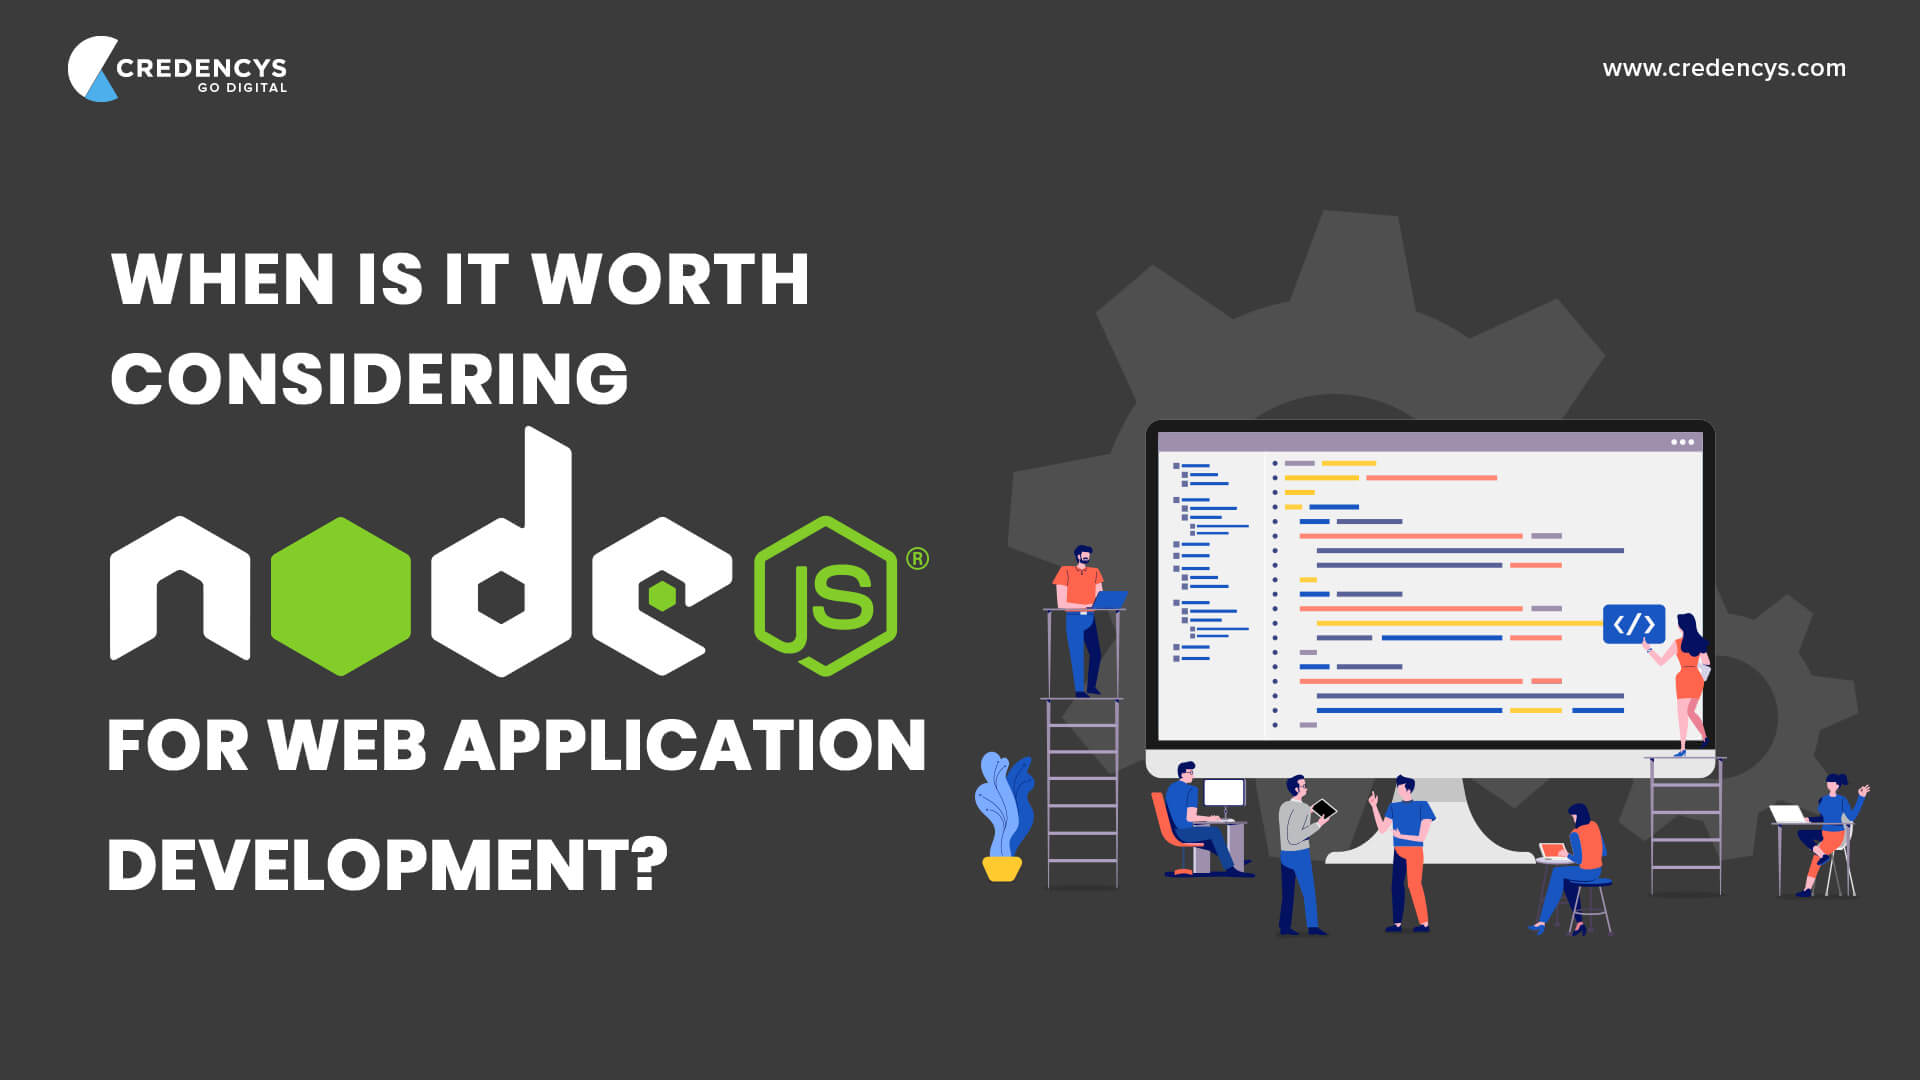 Node JS Use Cases: When Is It Worth Considering for Web App